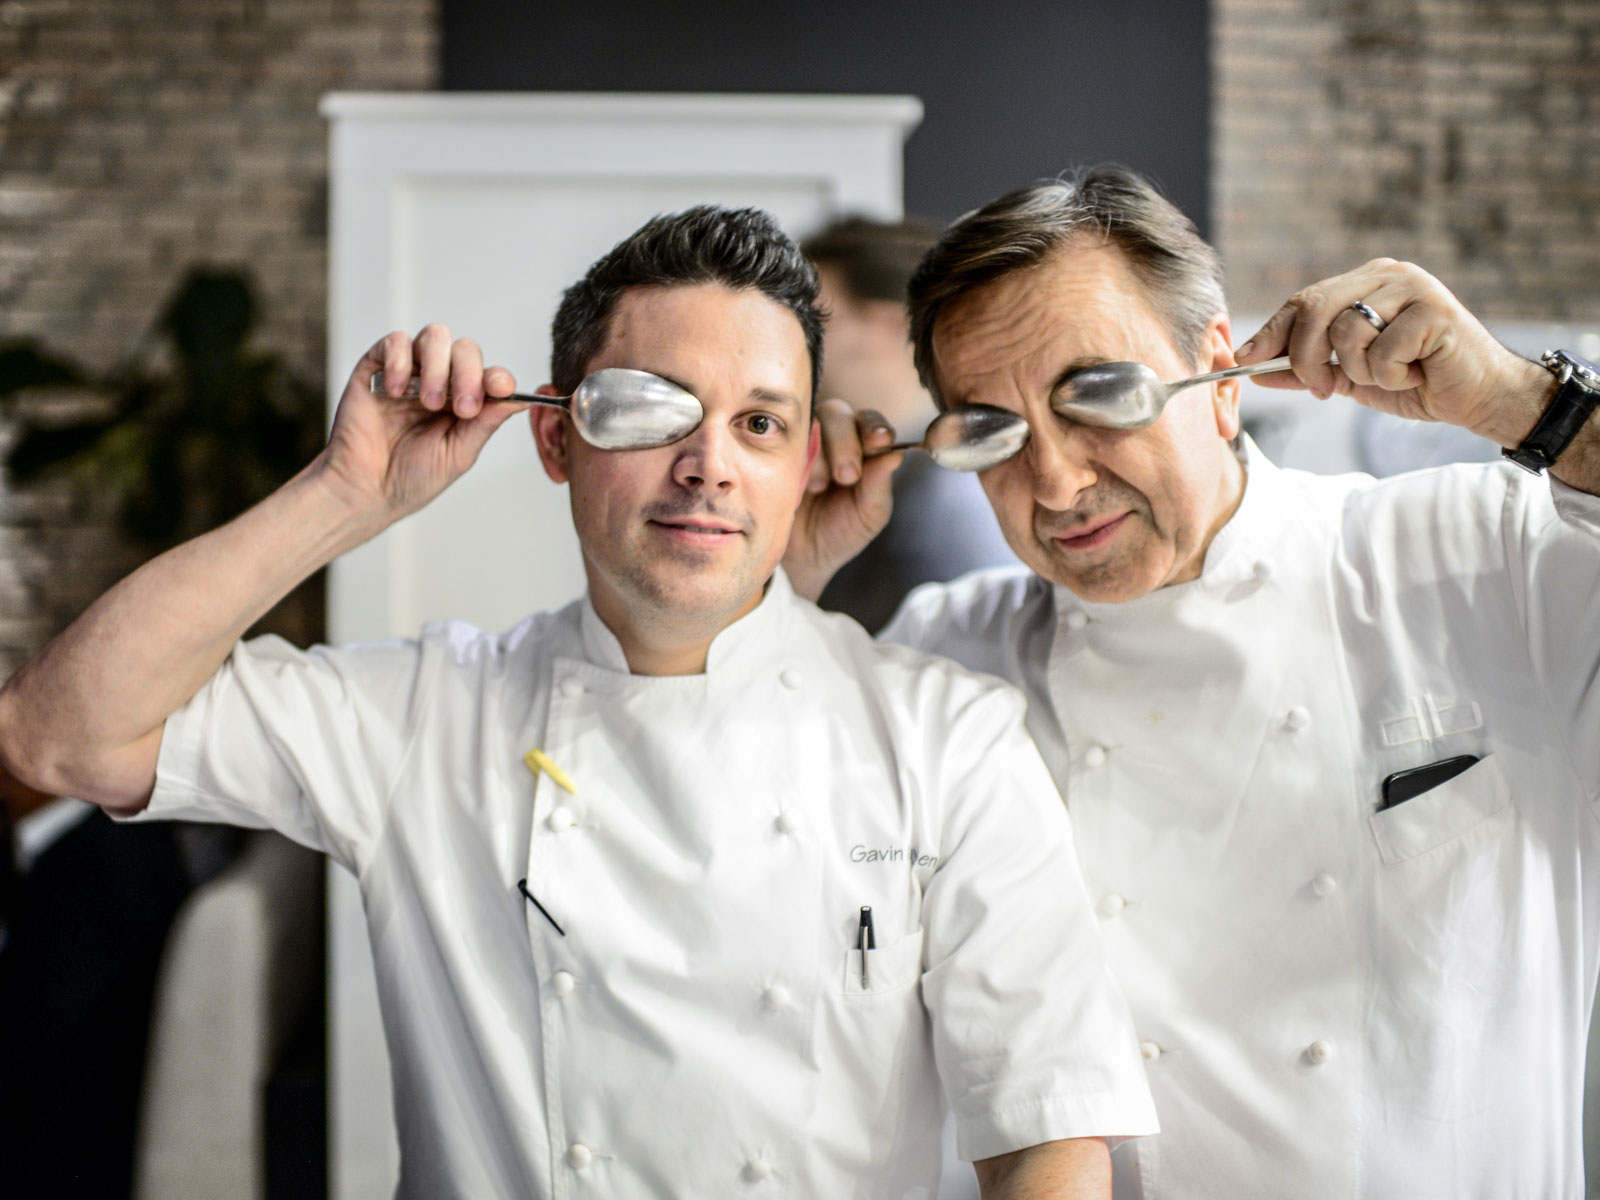 Gavin Kaysen and Daniel Boulud